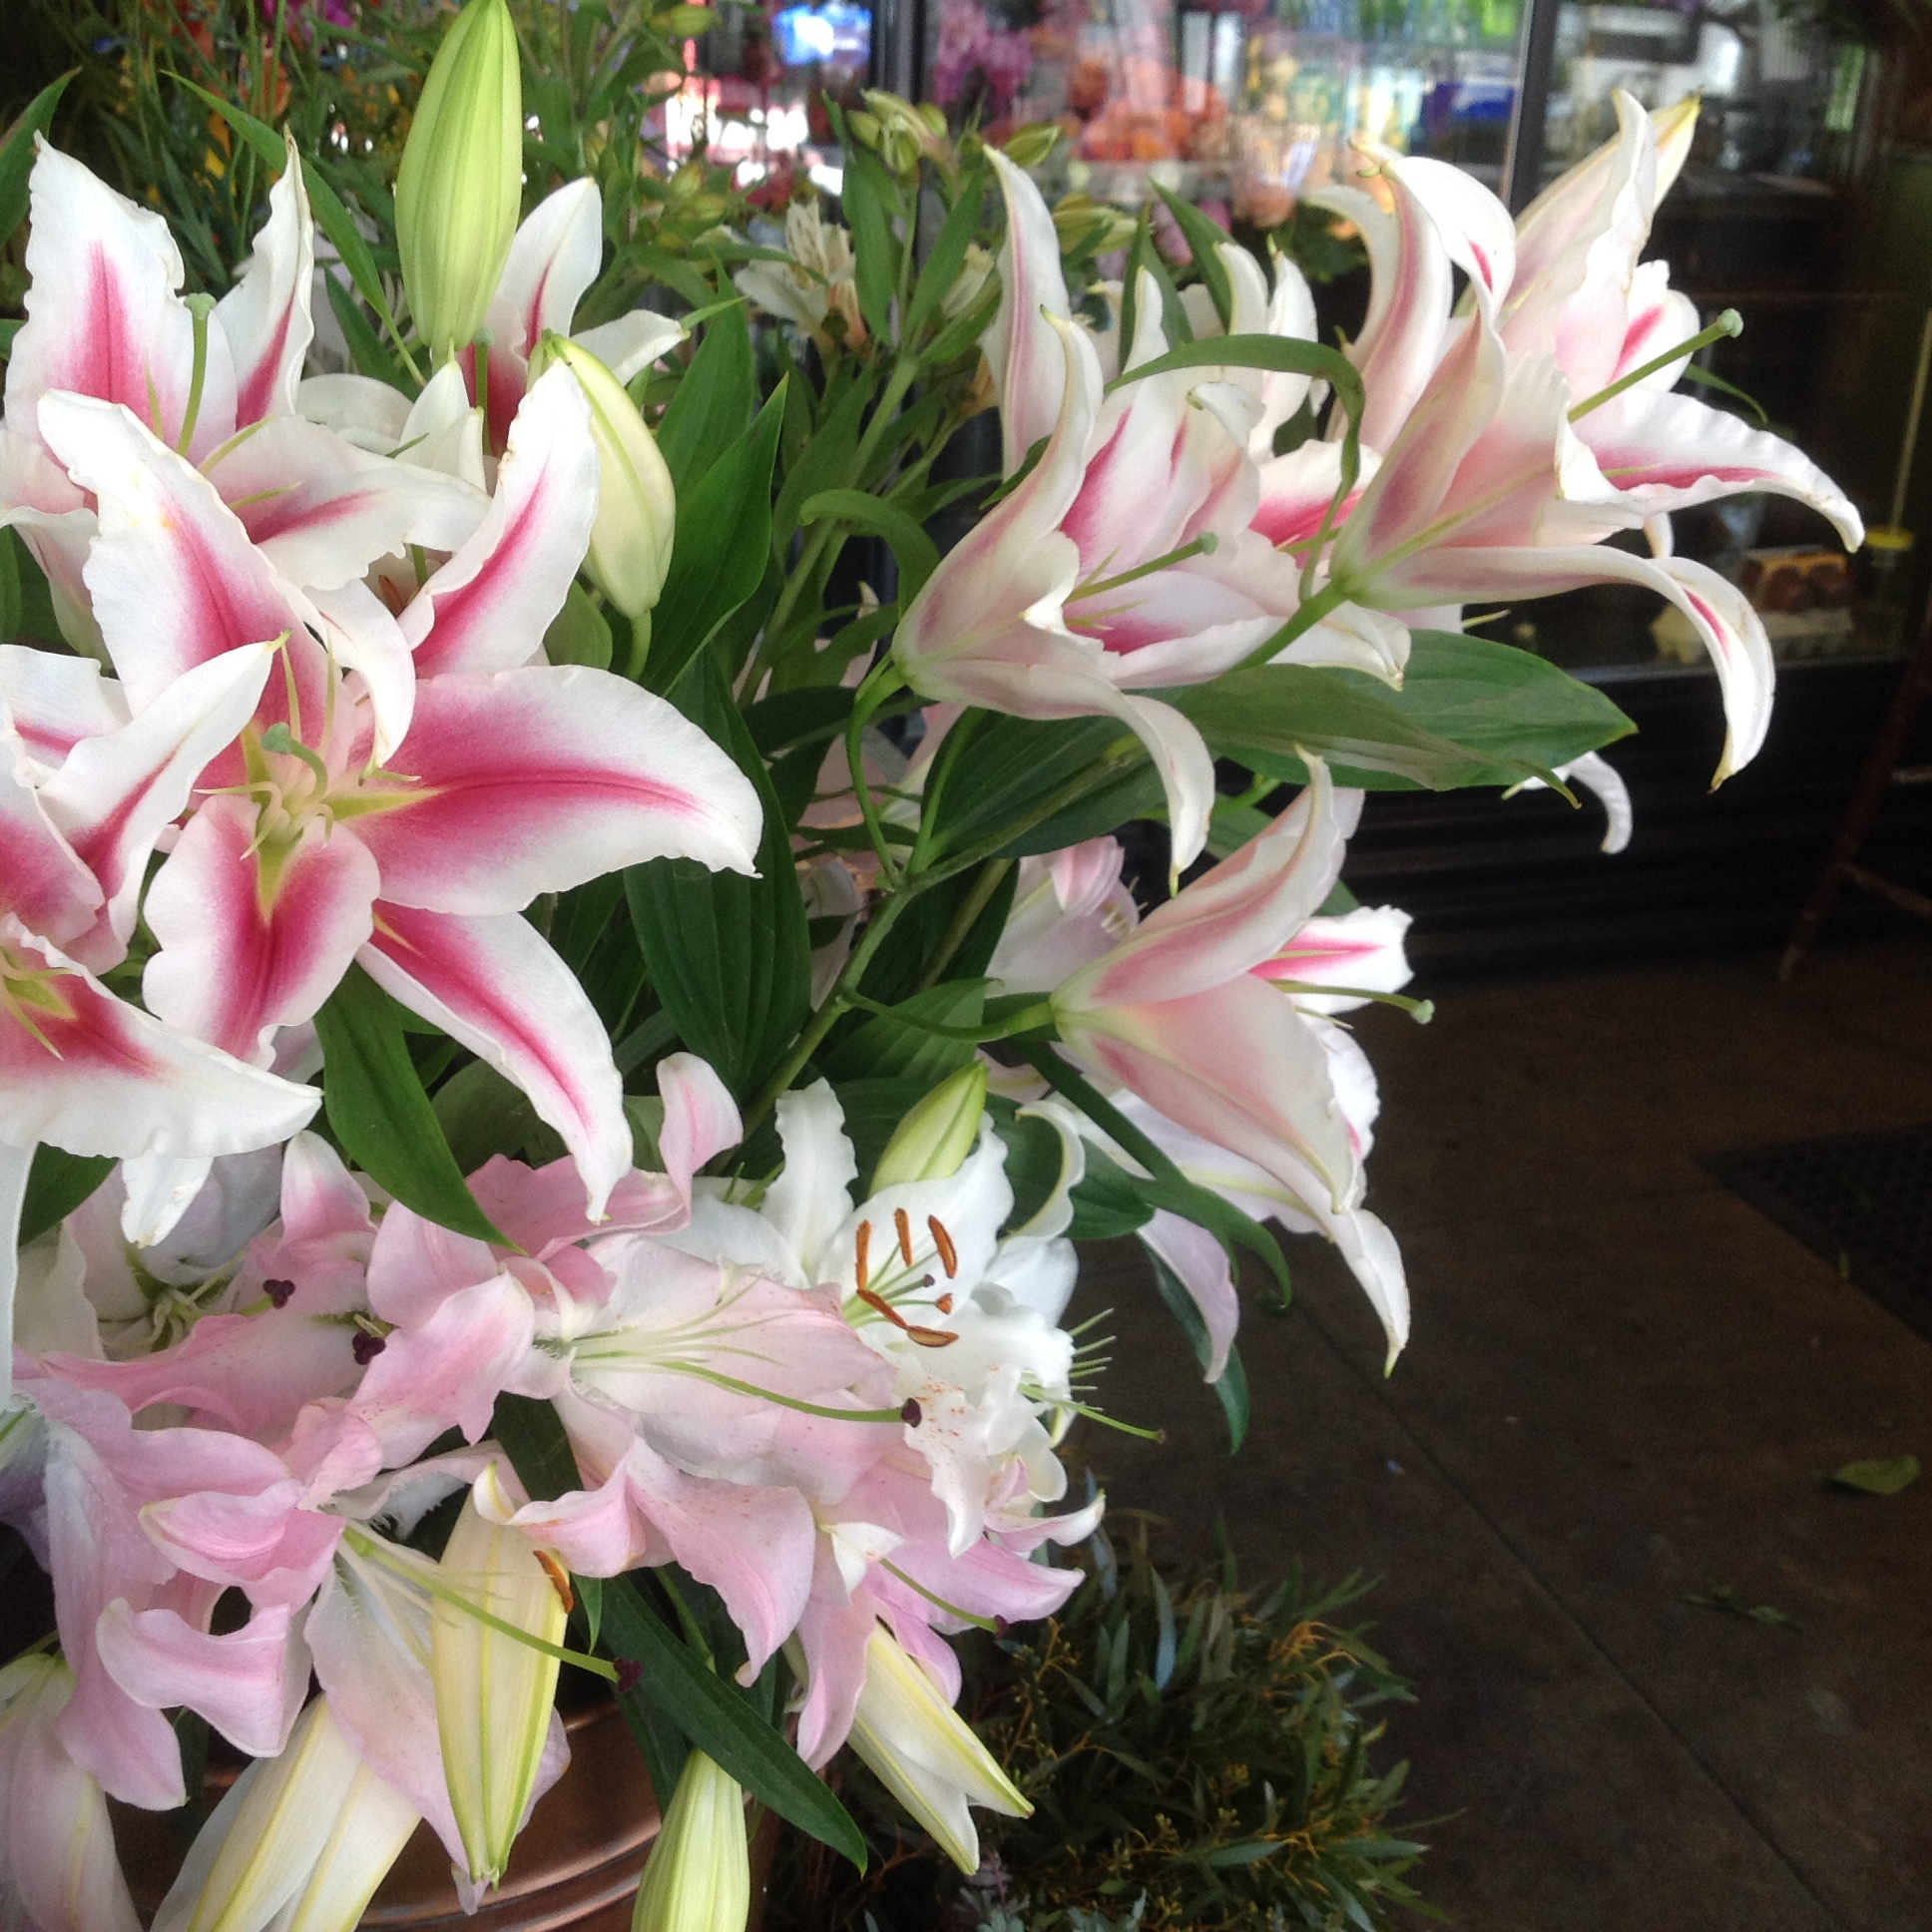 Lillies, A mass of fragrance and beauty